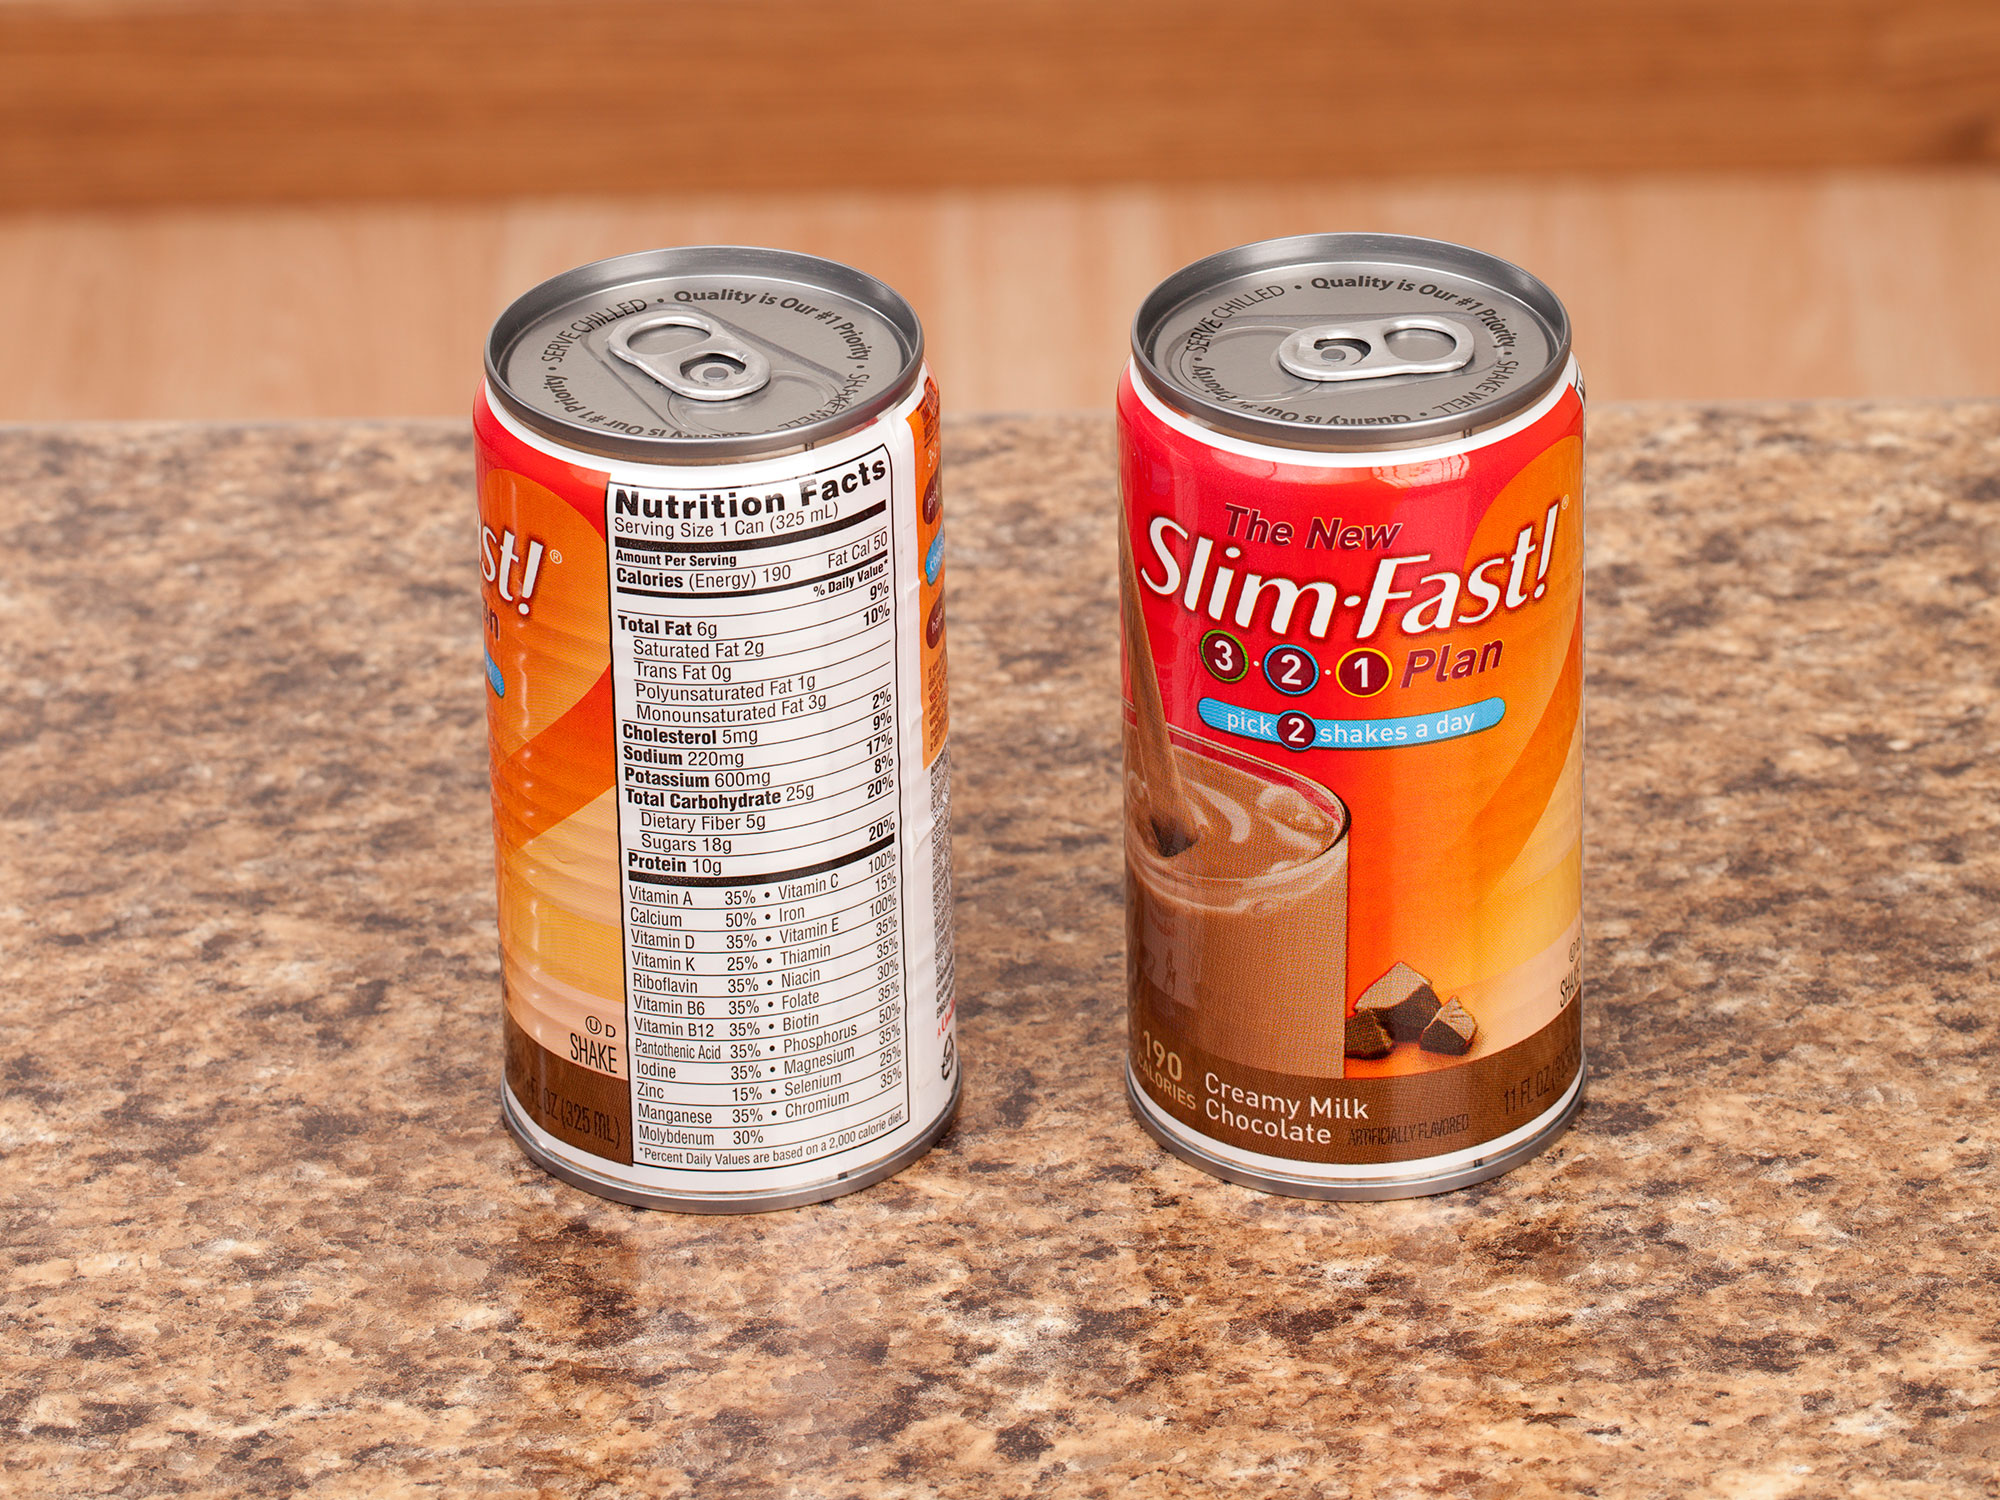 Let's Talk About SlimFast and How Bad It Is | Extra Crispy